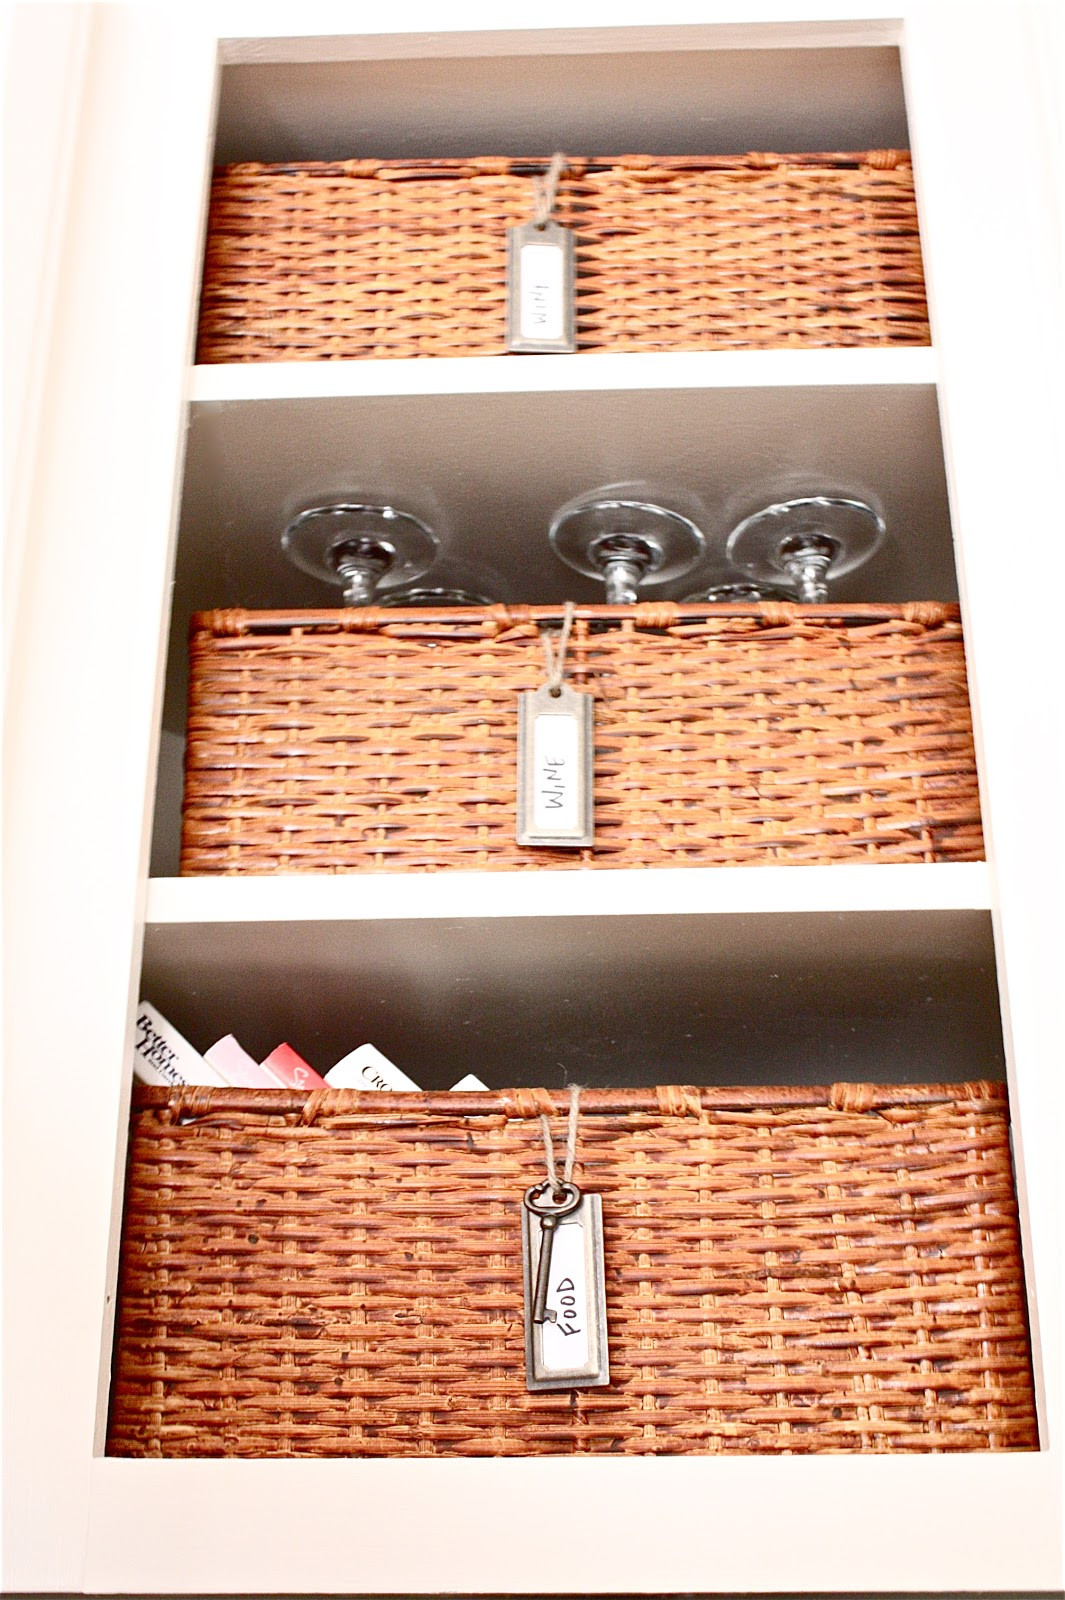 Best ideas about DIY Wine Cabinet . Save or Pin The Yellow Cape Cod DIY Wine Cabinet Easiest Wine Storage Now.